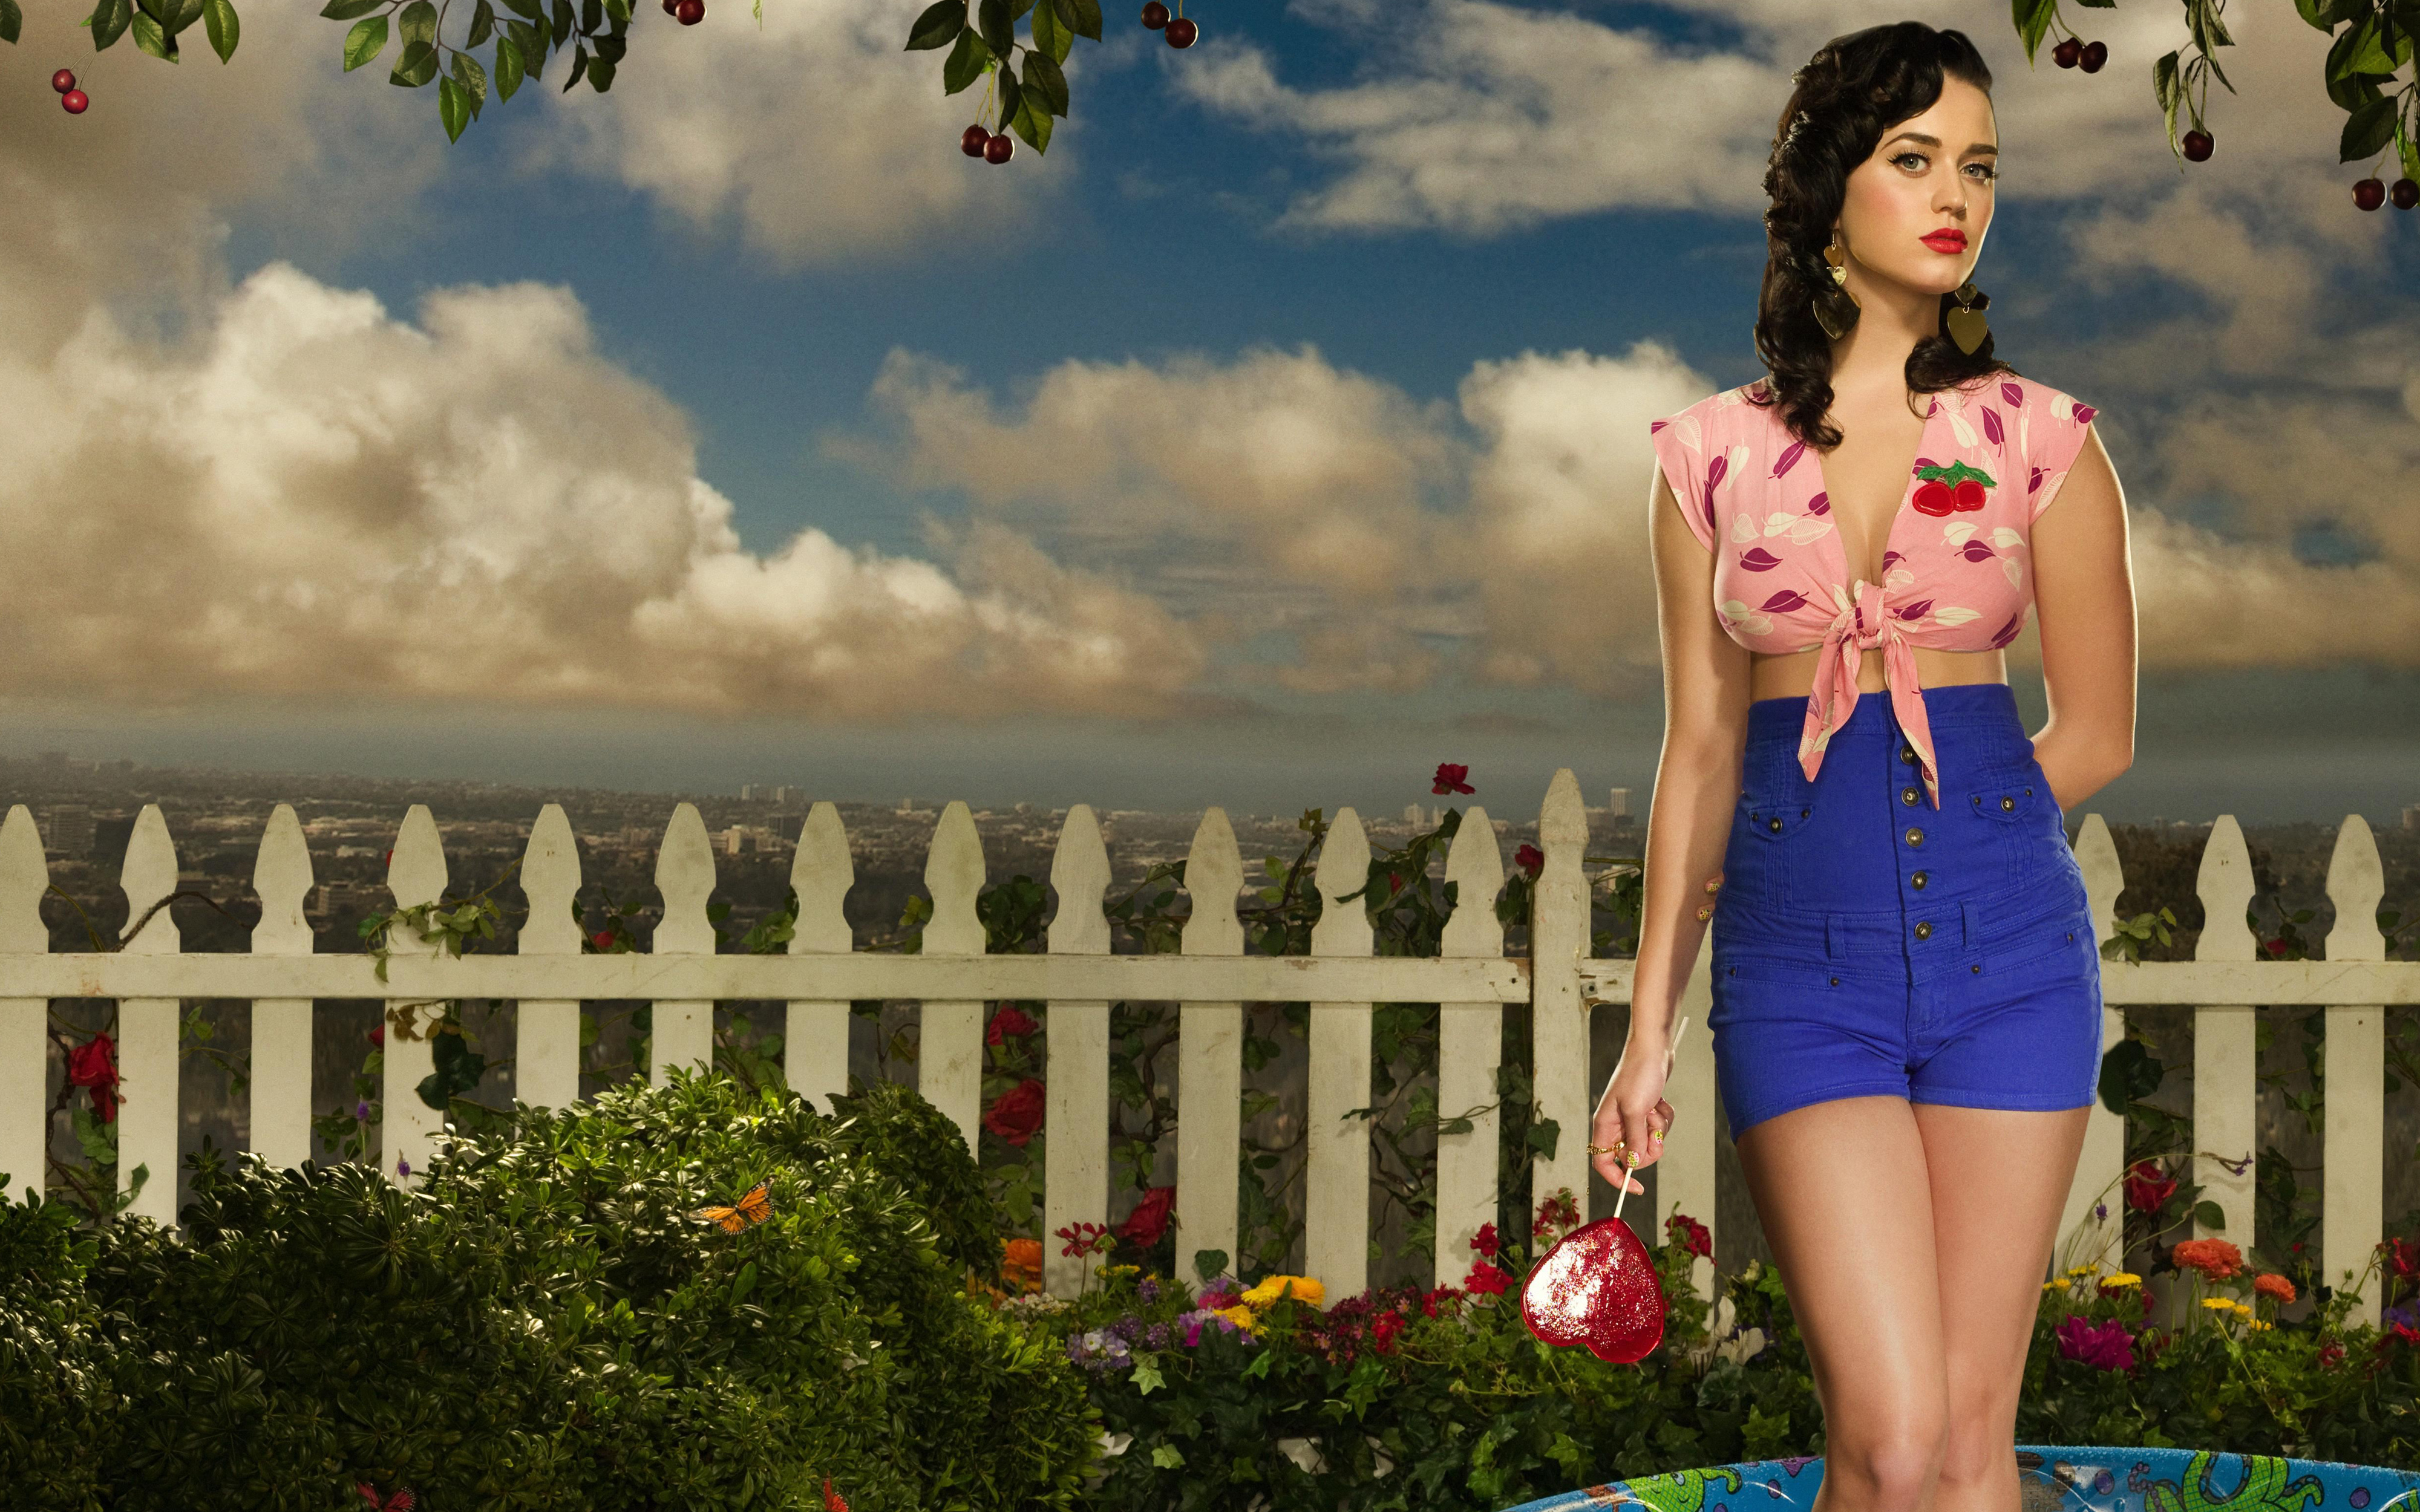 Katy Perry 2012 Album 3588.89 Kb